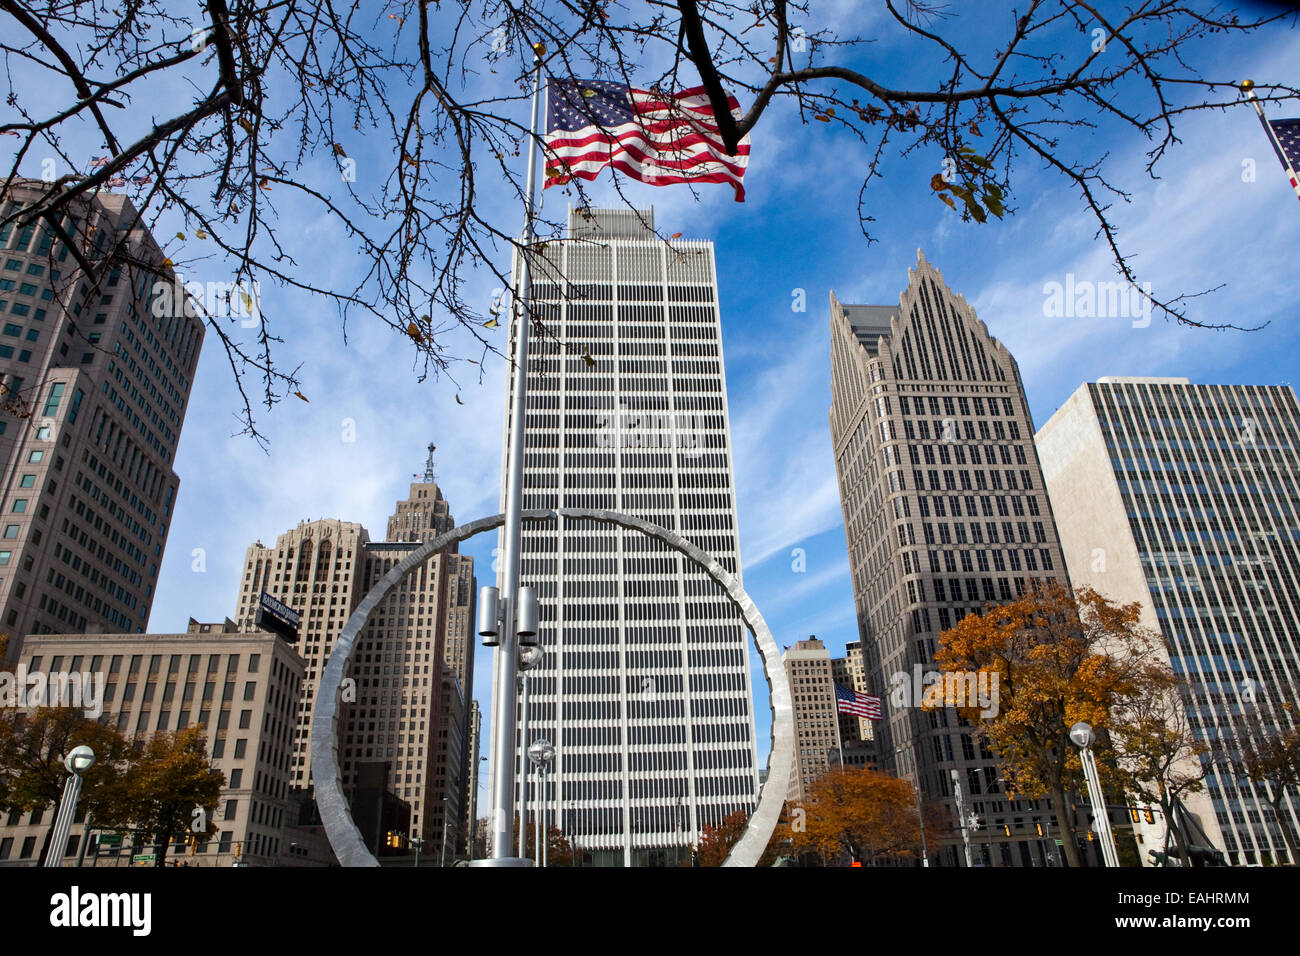 A view of downtown Detroit - Stock Image